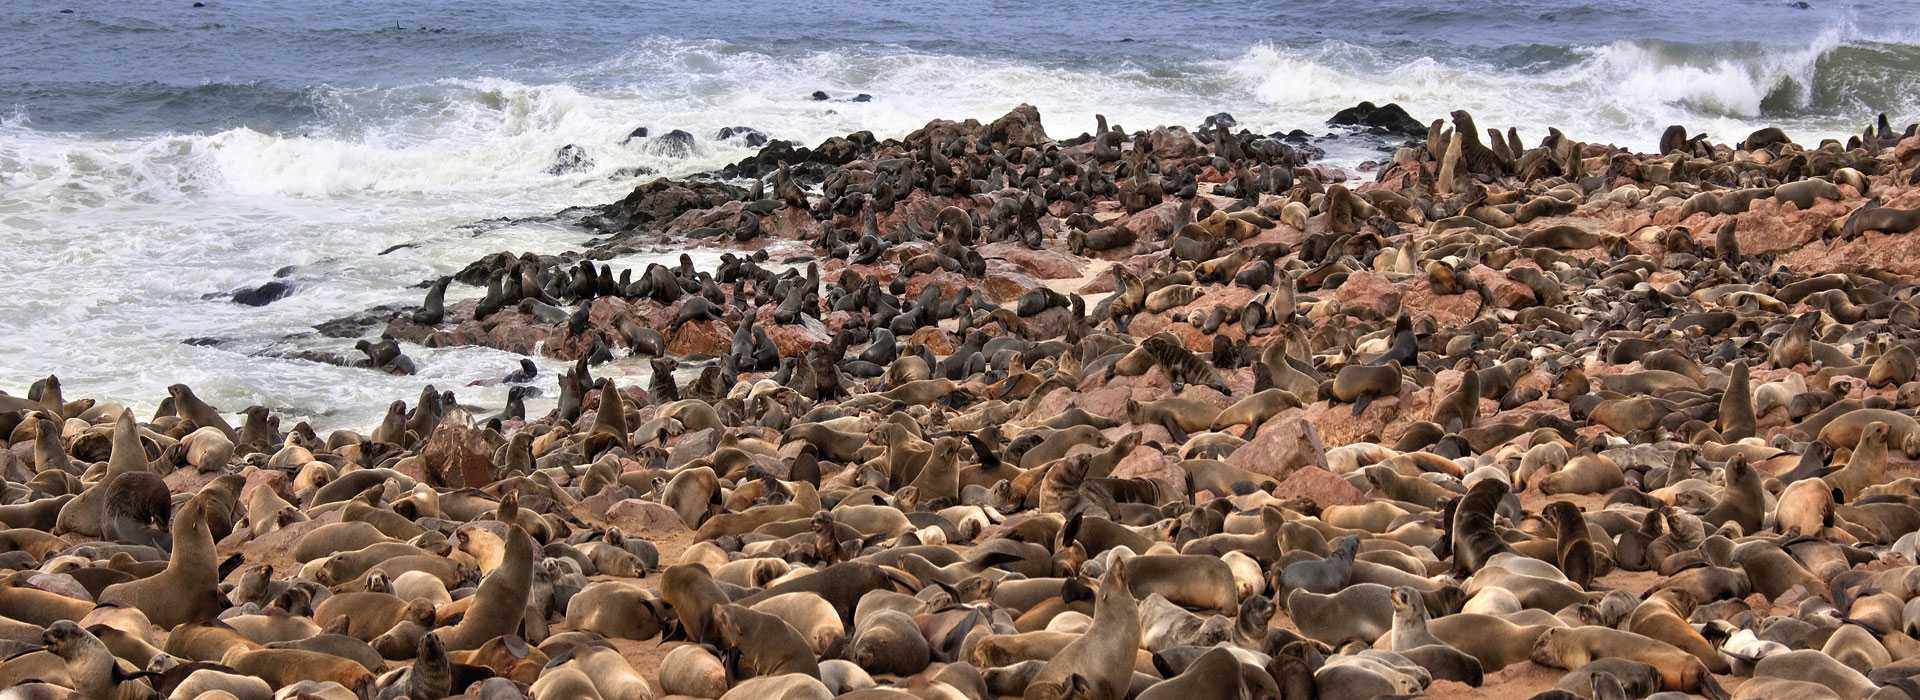 Cape Fur Seals, Skeleton Coast, Namibia